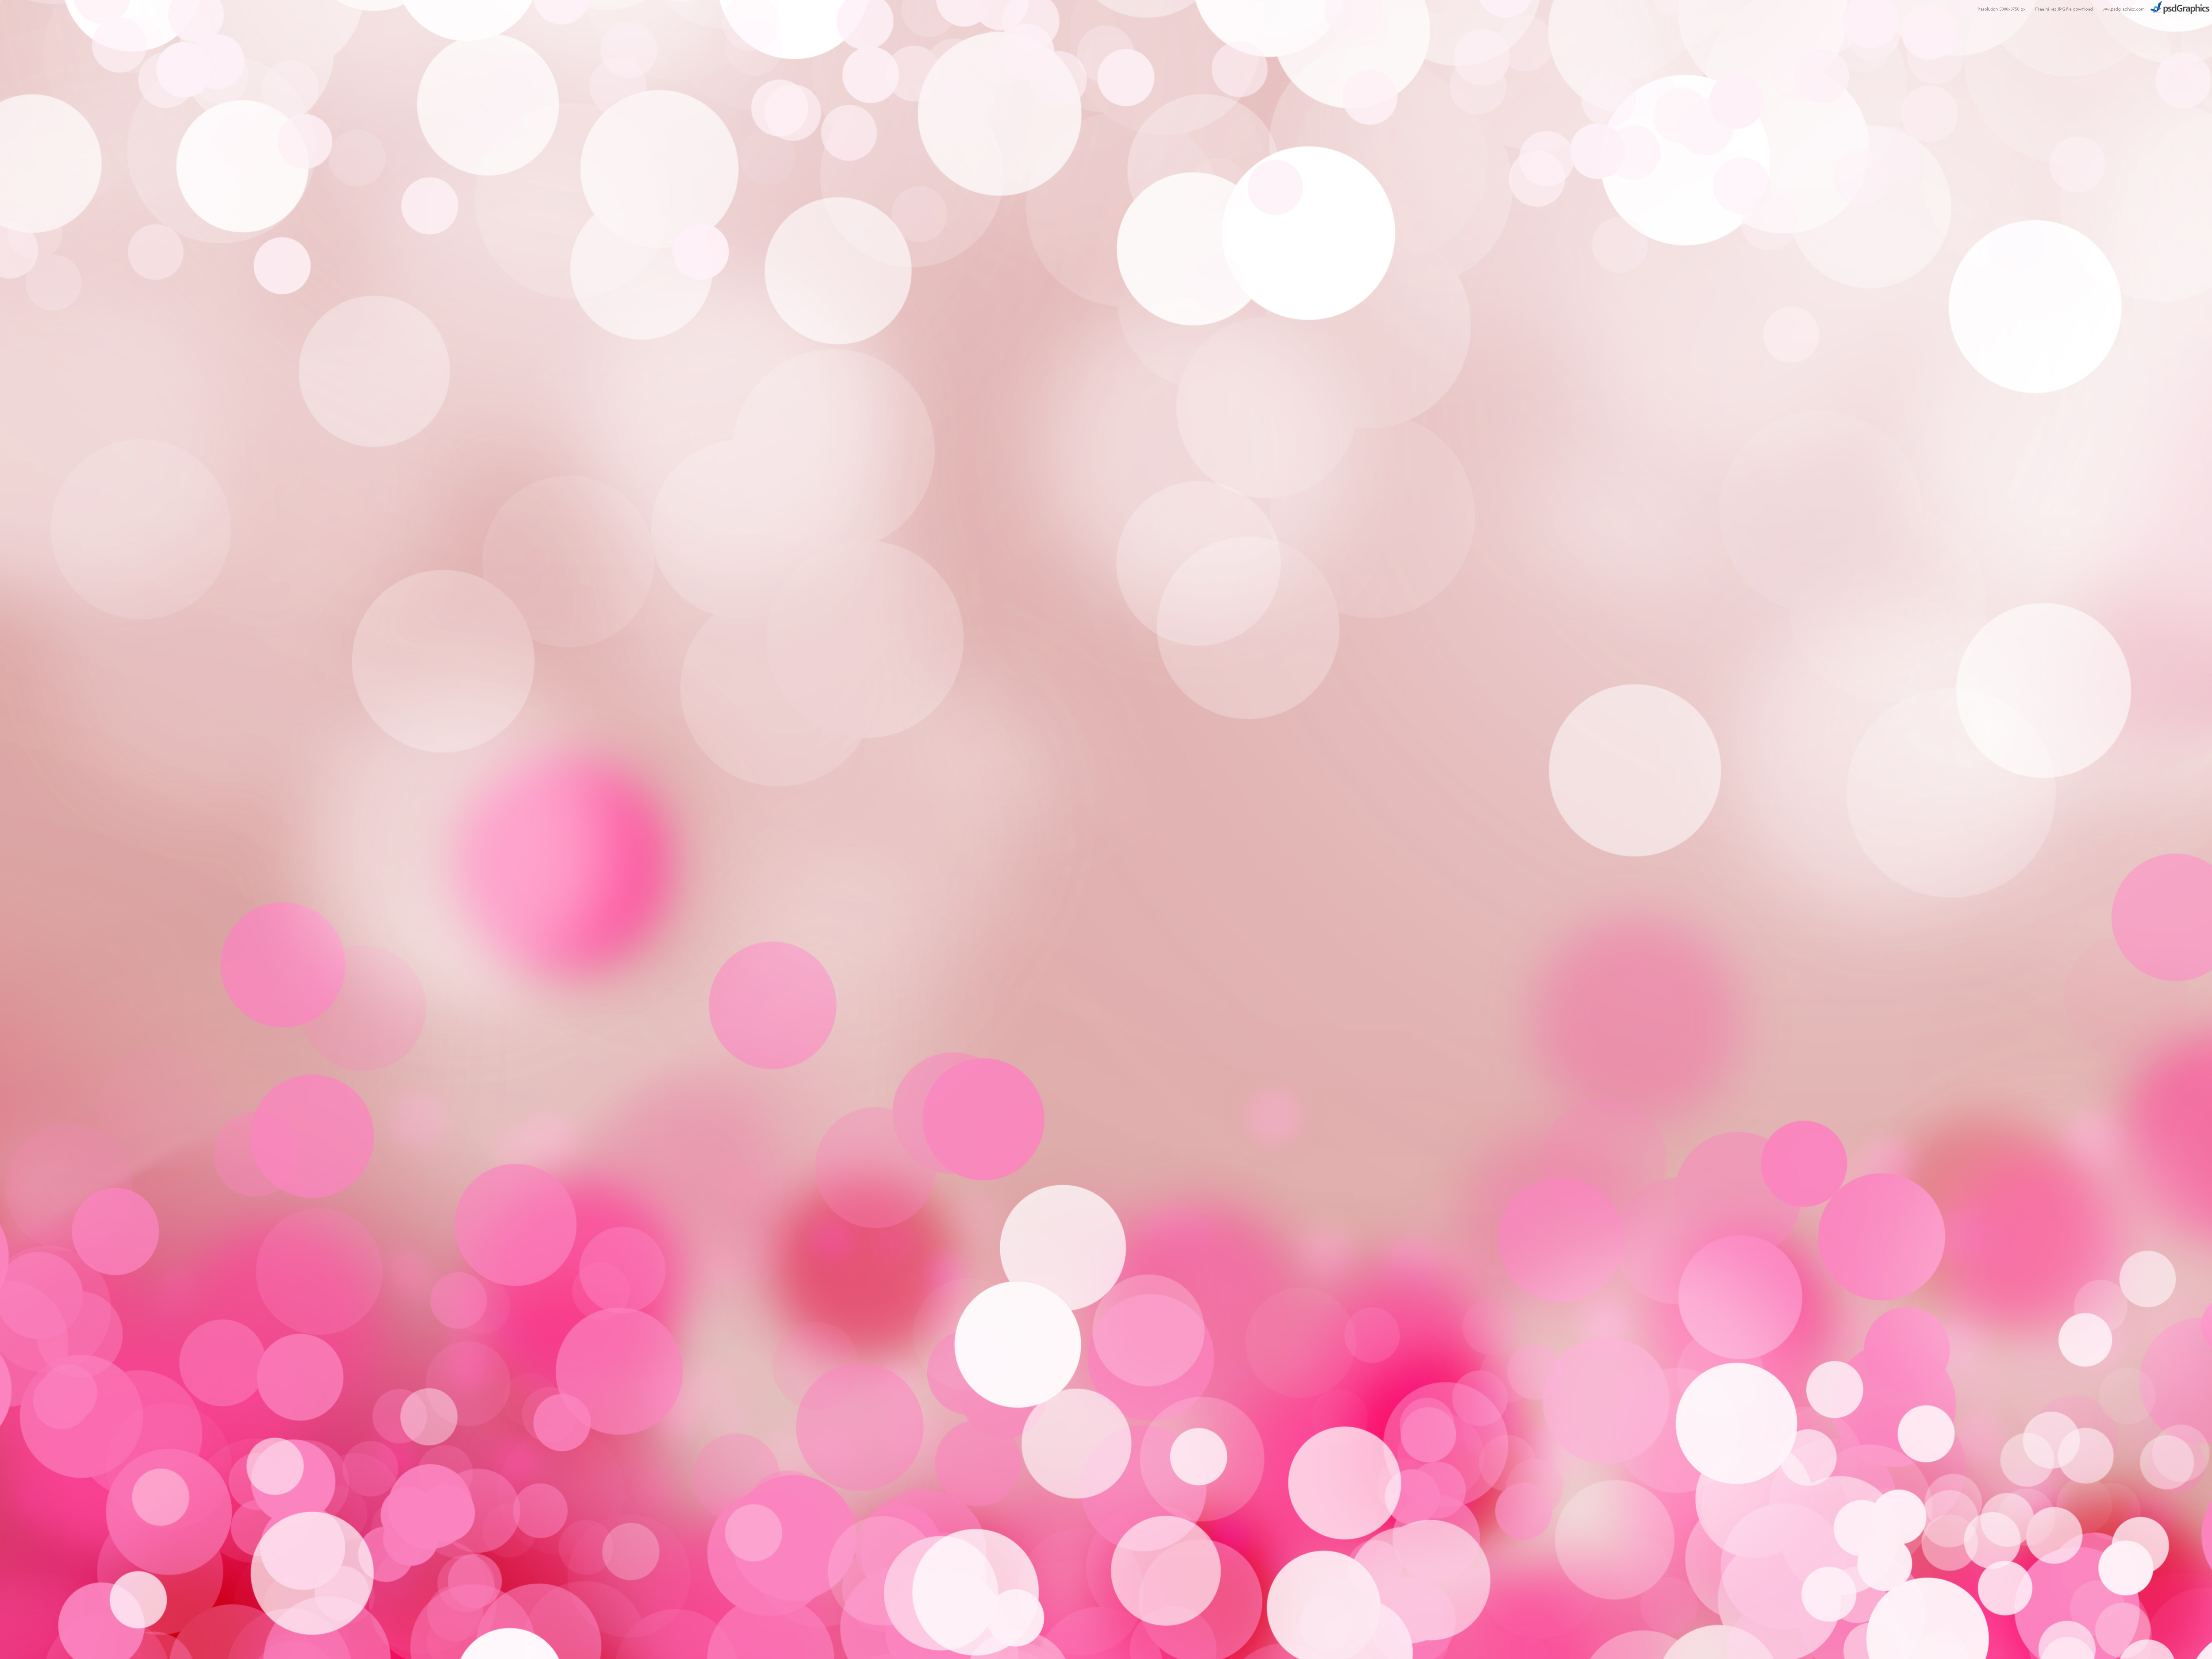 Light Pink Backgrounds  wallpaper, wallpaper hd, background desktop #8304